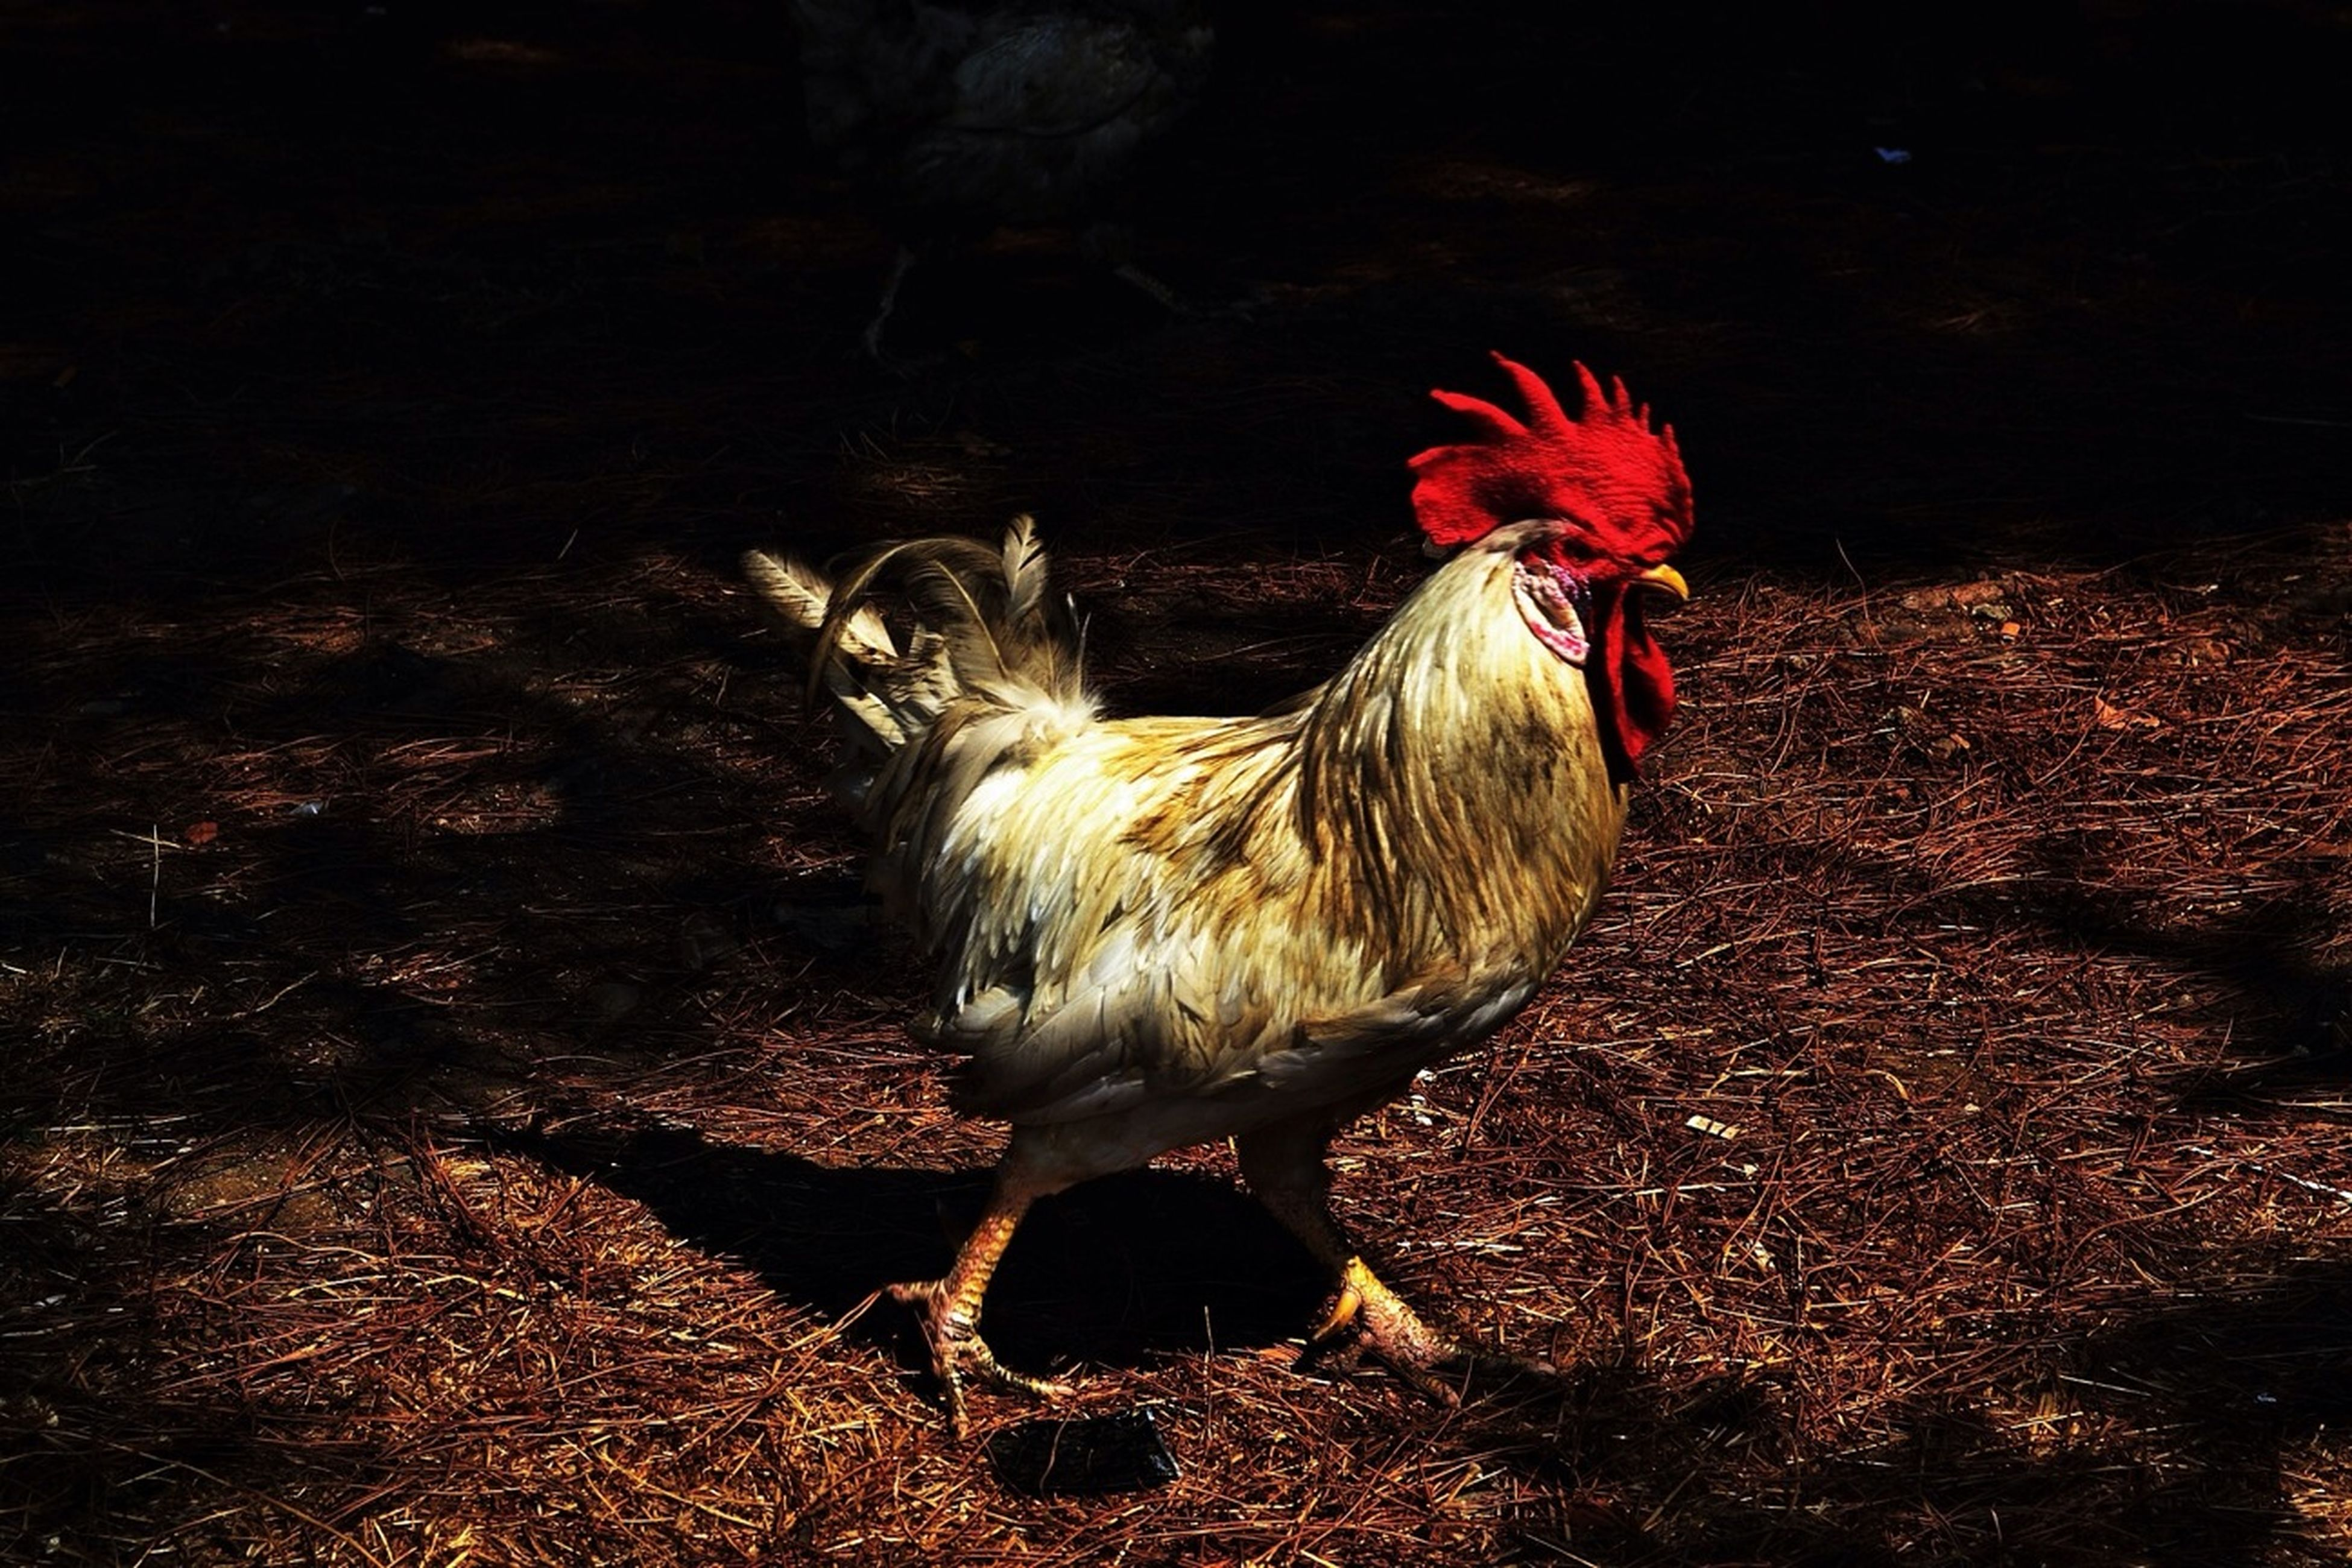 animal themes, bird, one animal, domestic animals, animals in the wild, livestock, wildlife, chicken - bird, red, rooster, nature, sunlight, field, zoology, full length, outdoors, hen, day, no people, side view